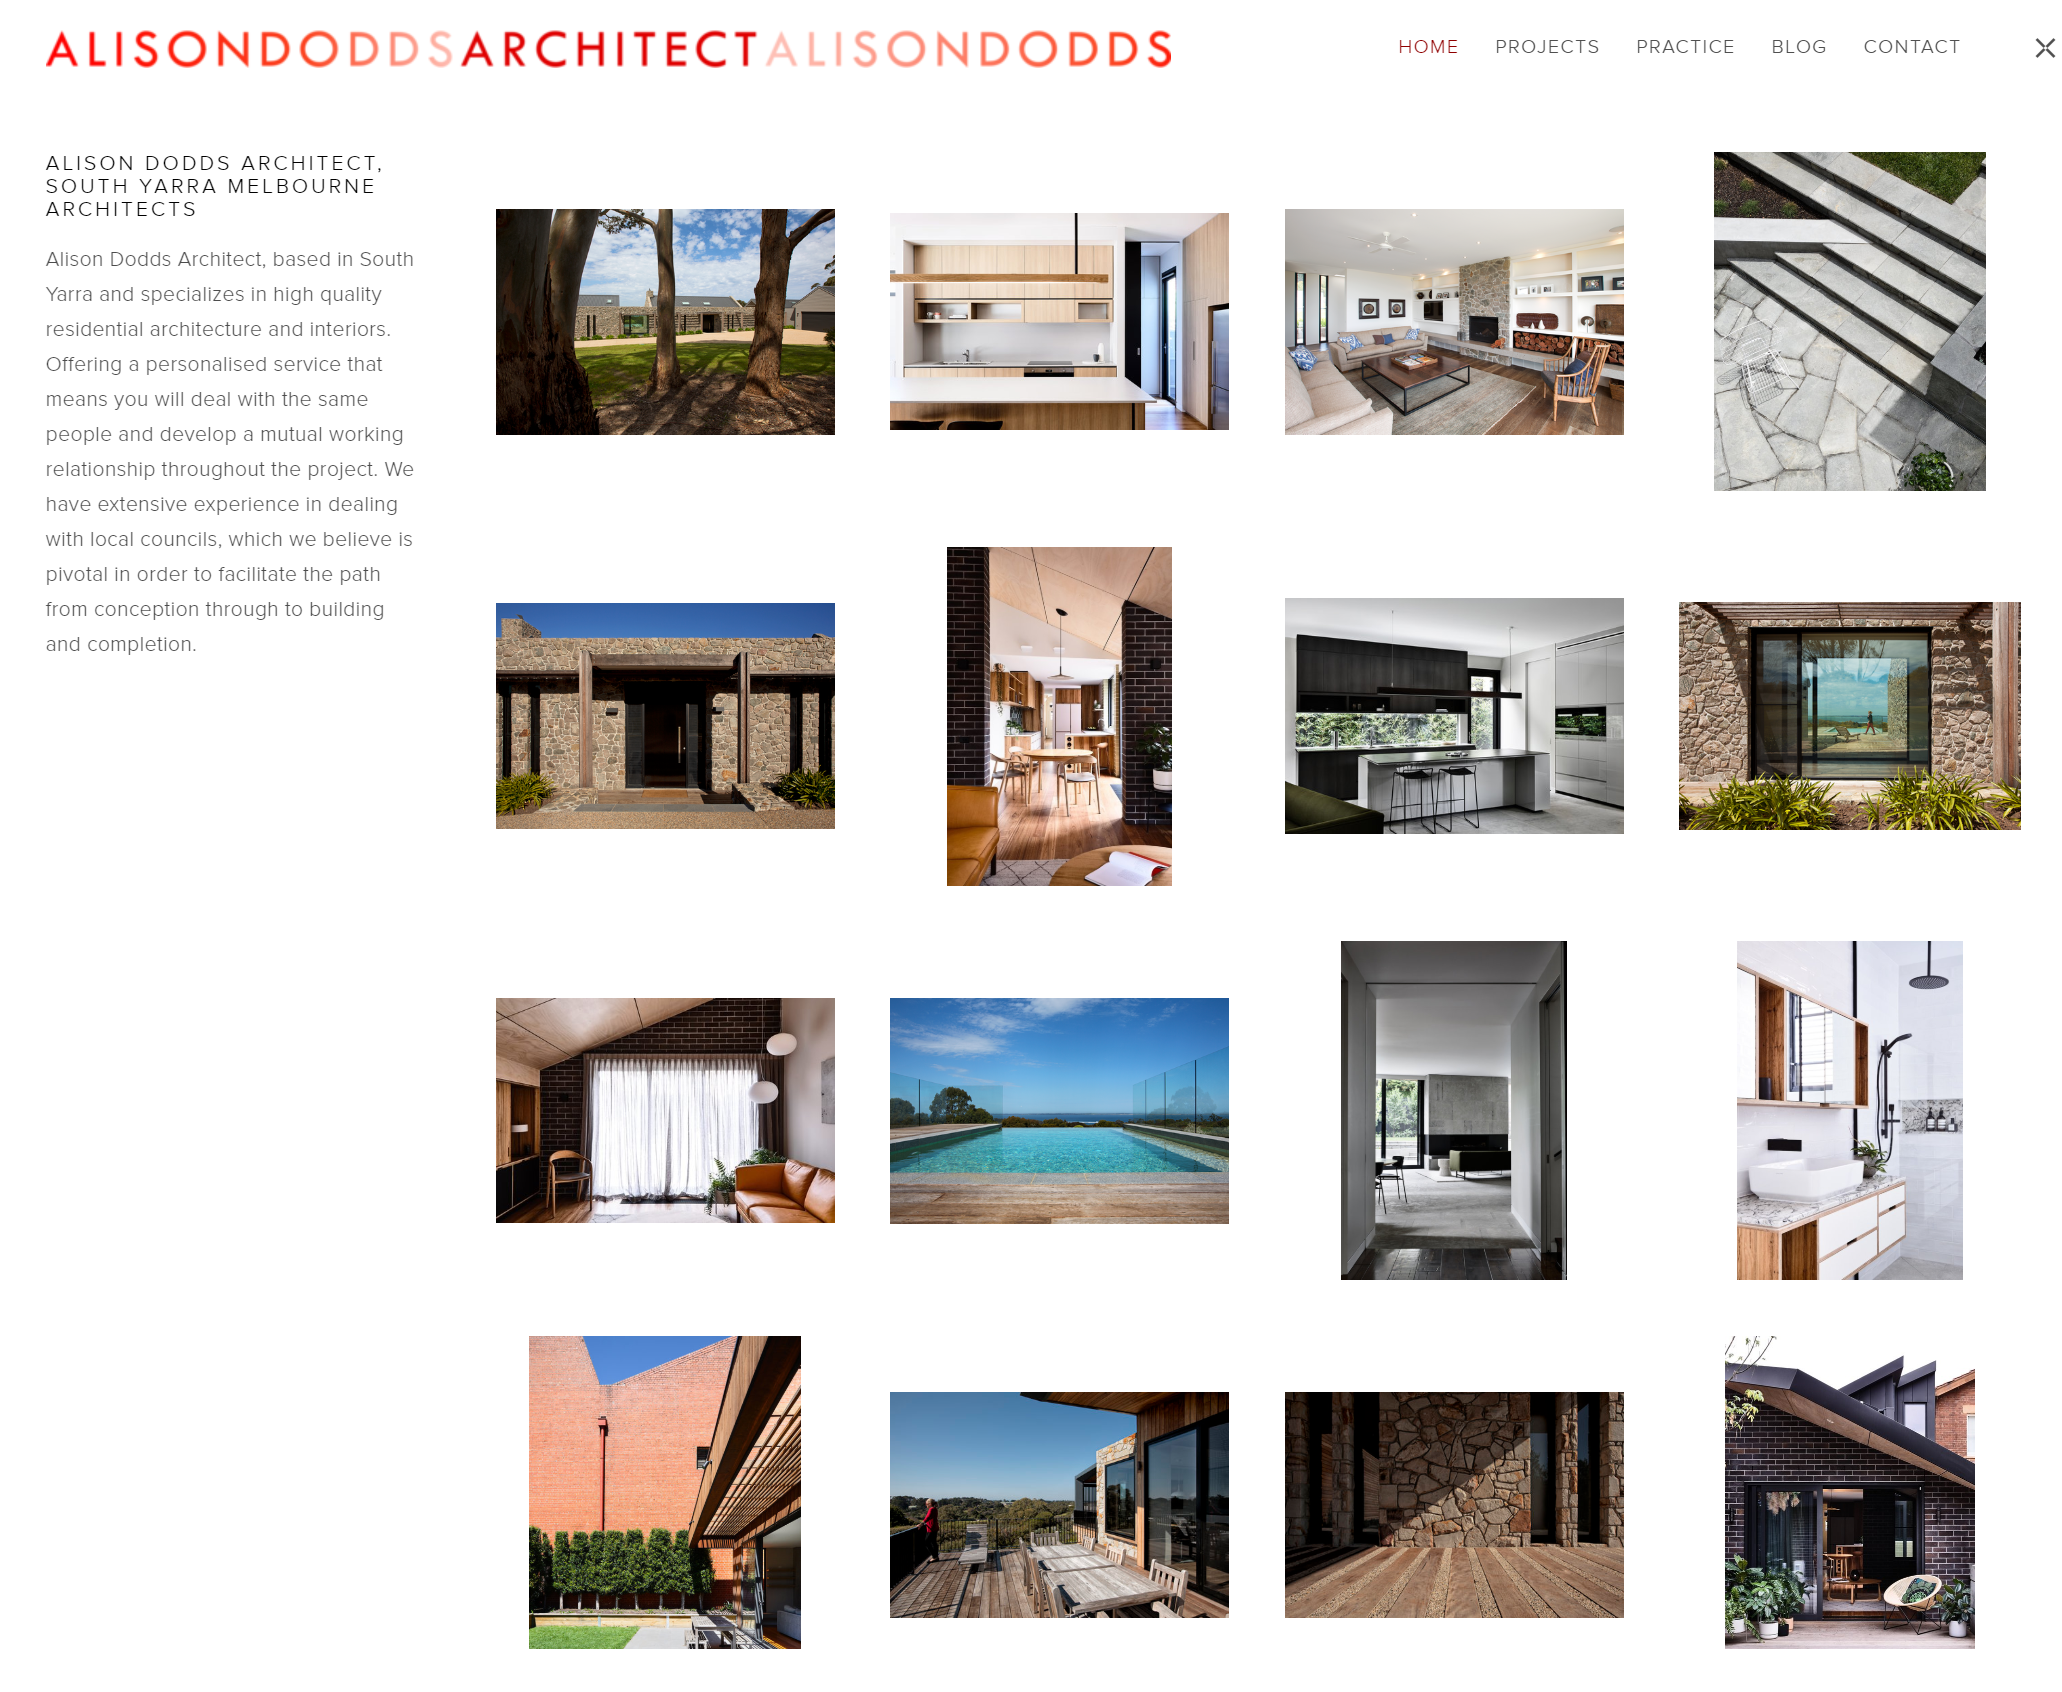 Alison Dodds Architect  Portfolio website for Melbourne Architect Alison Dodds. Showcasing upcoming and current projects.  View site ->